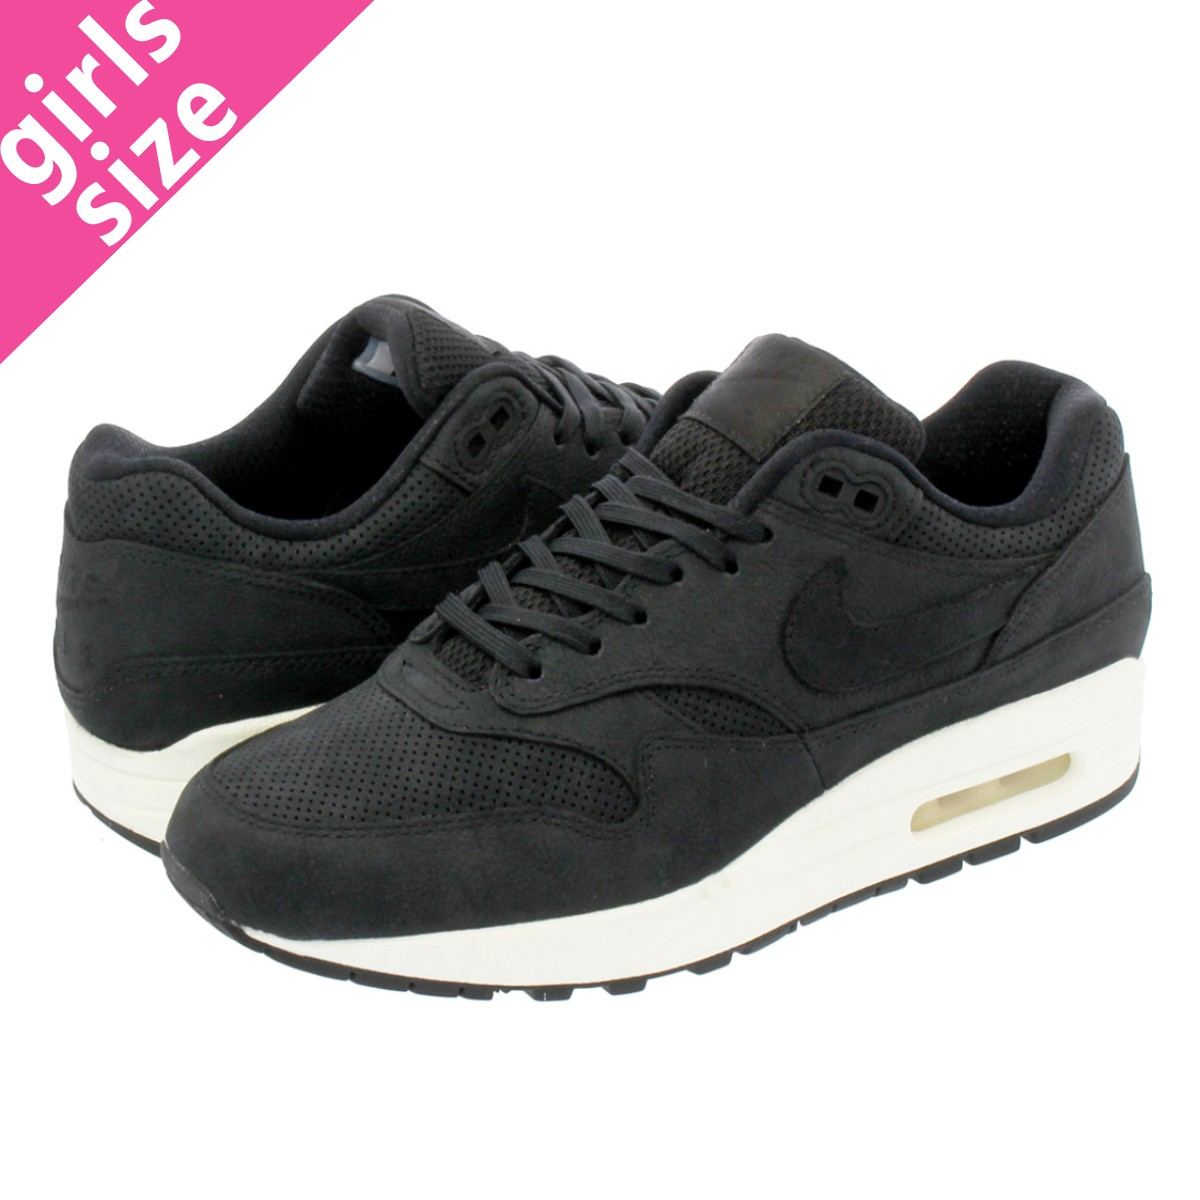 buy online 28e0d 45b13 LOWTEX BIG-SMALL SHOP NIKE WMNS AIR MAX 1 PINNACLE Nike women Air Max 1  Pinnacle BLACKBLACKSAIL  Rakuten Global Market